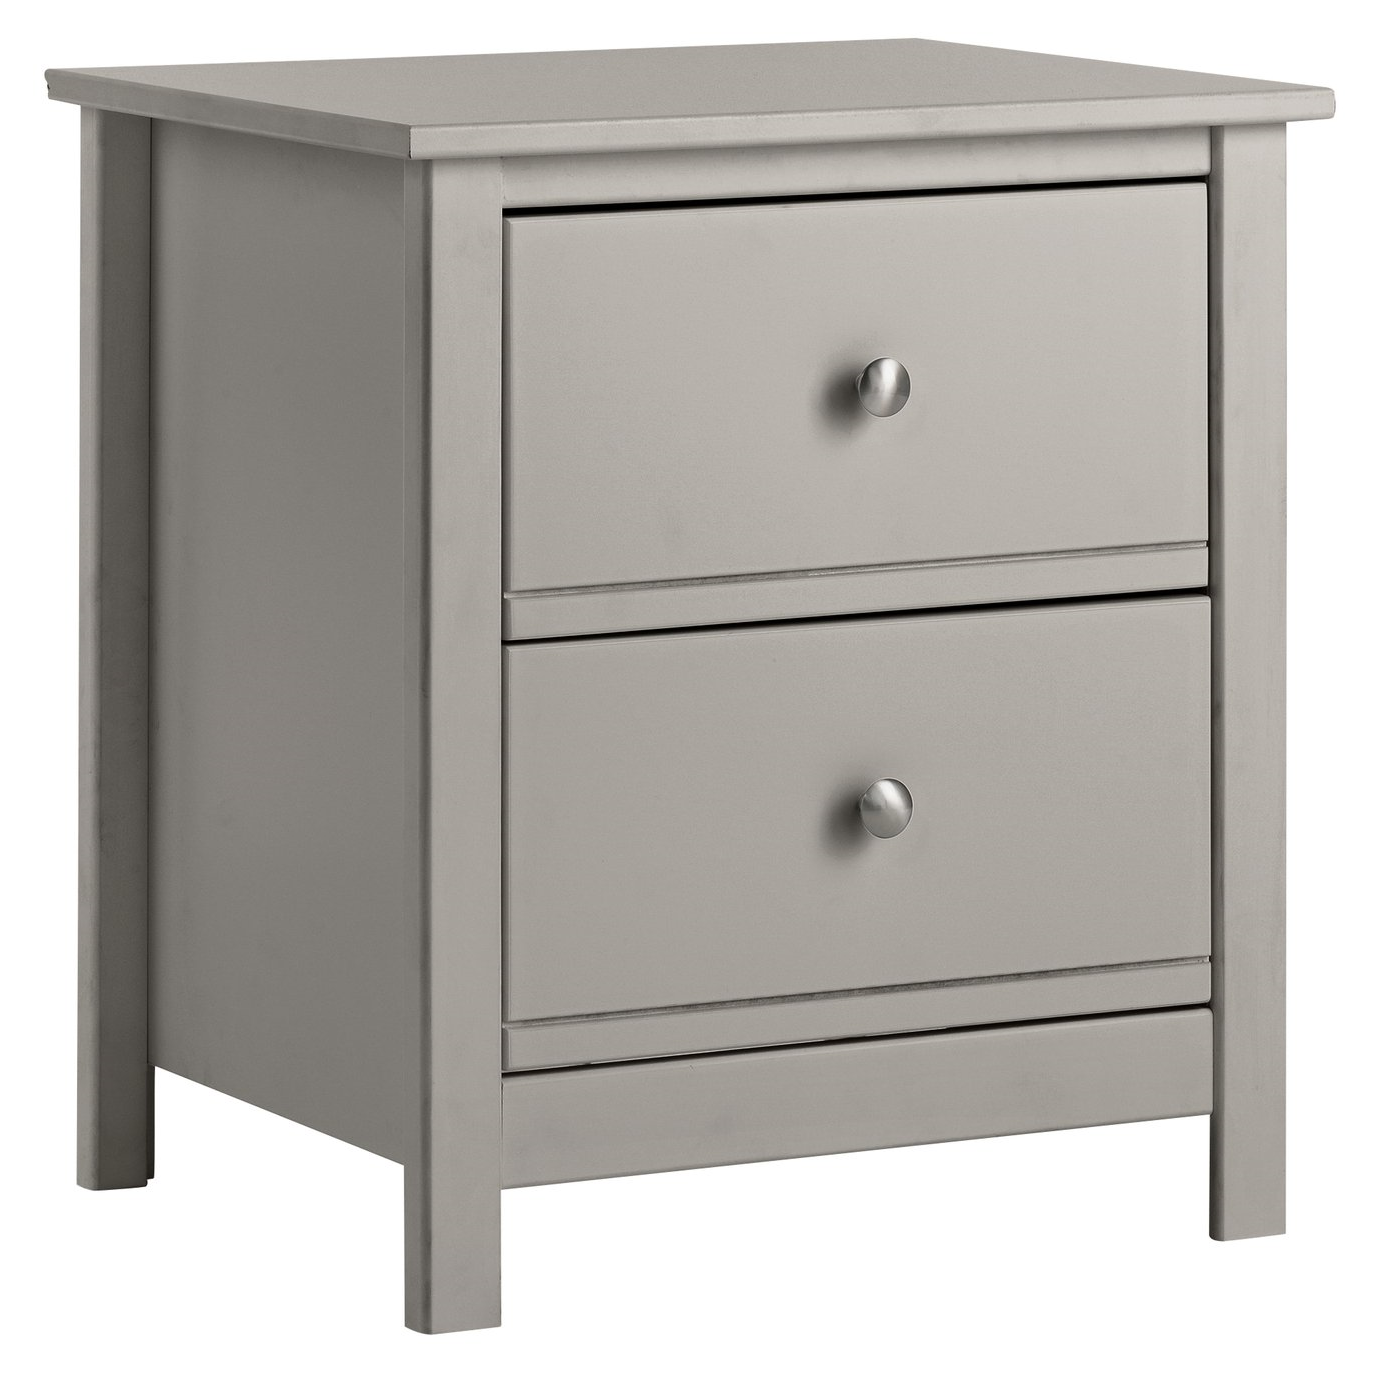 Argos Home Brooklyn 2 Drawer Bedside Table Grey H54 X W49 X D40cm In 2020 White Bedside Table Bedside Table Grey Kids Bedside Table